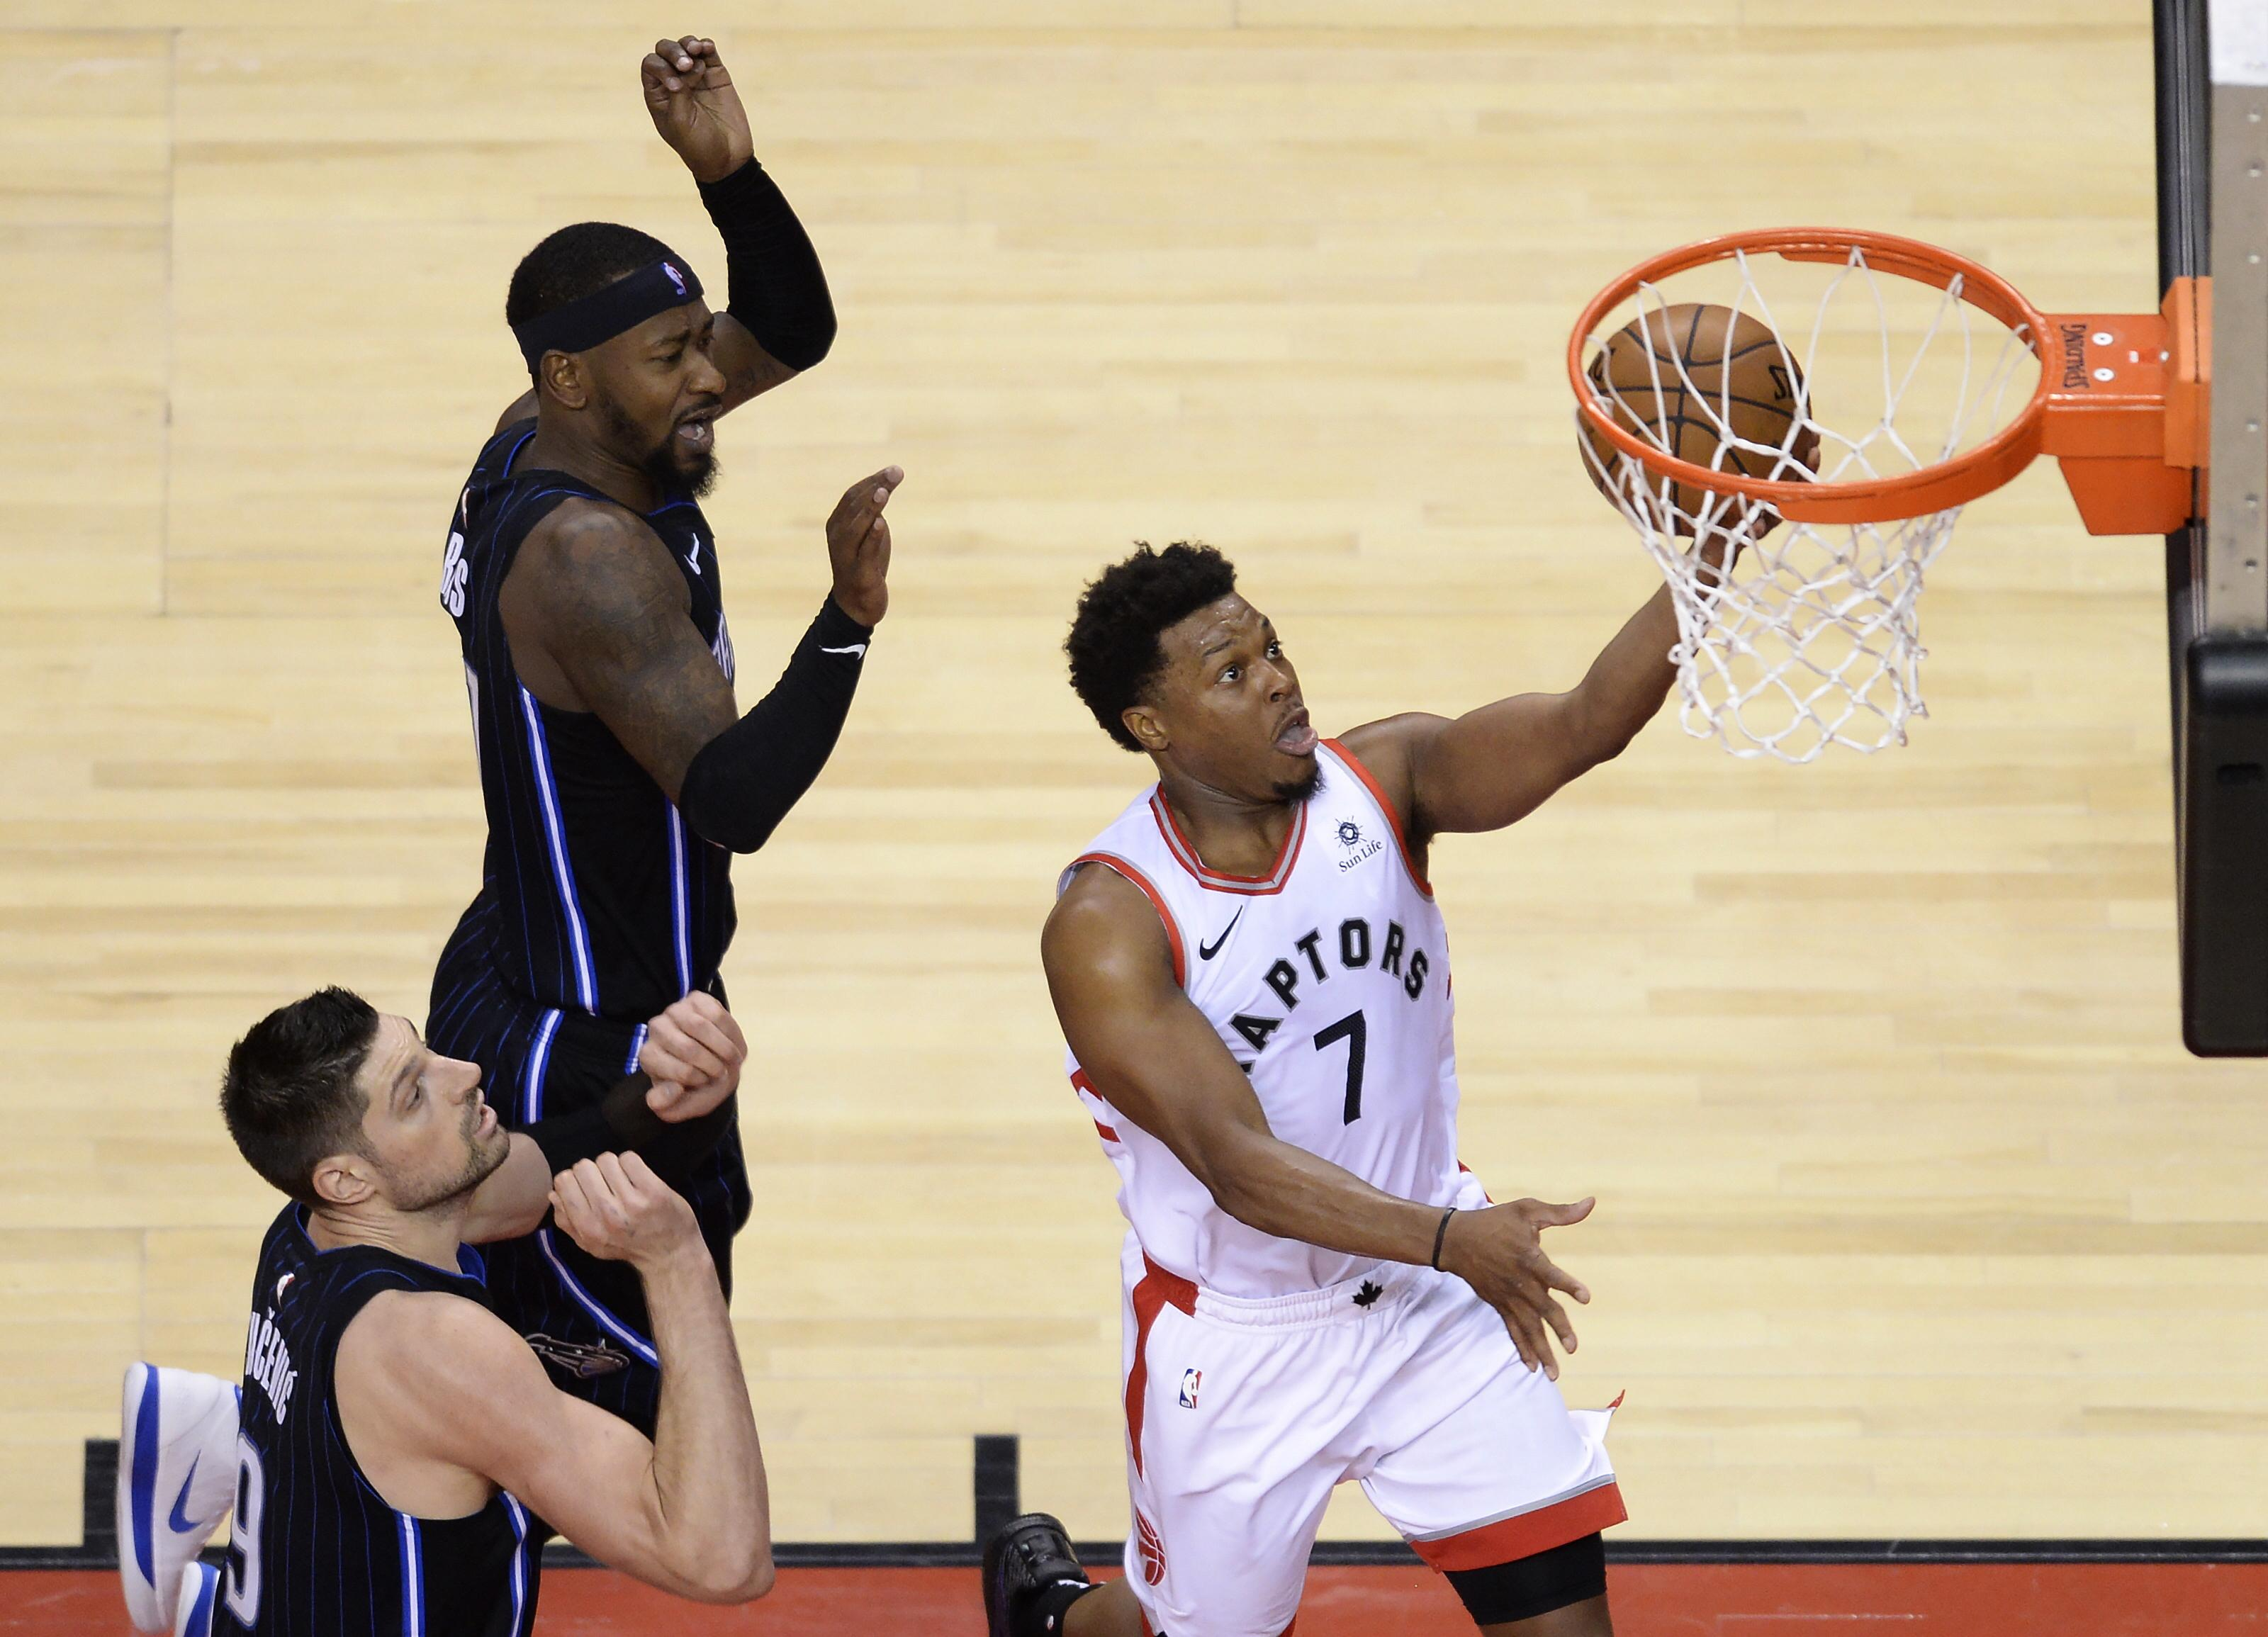 ffc591902eb0 Toronto Raptors guard Kyle Lowry (7) scores past Orlando Magic center  Nikola Vucevic (